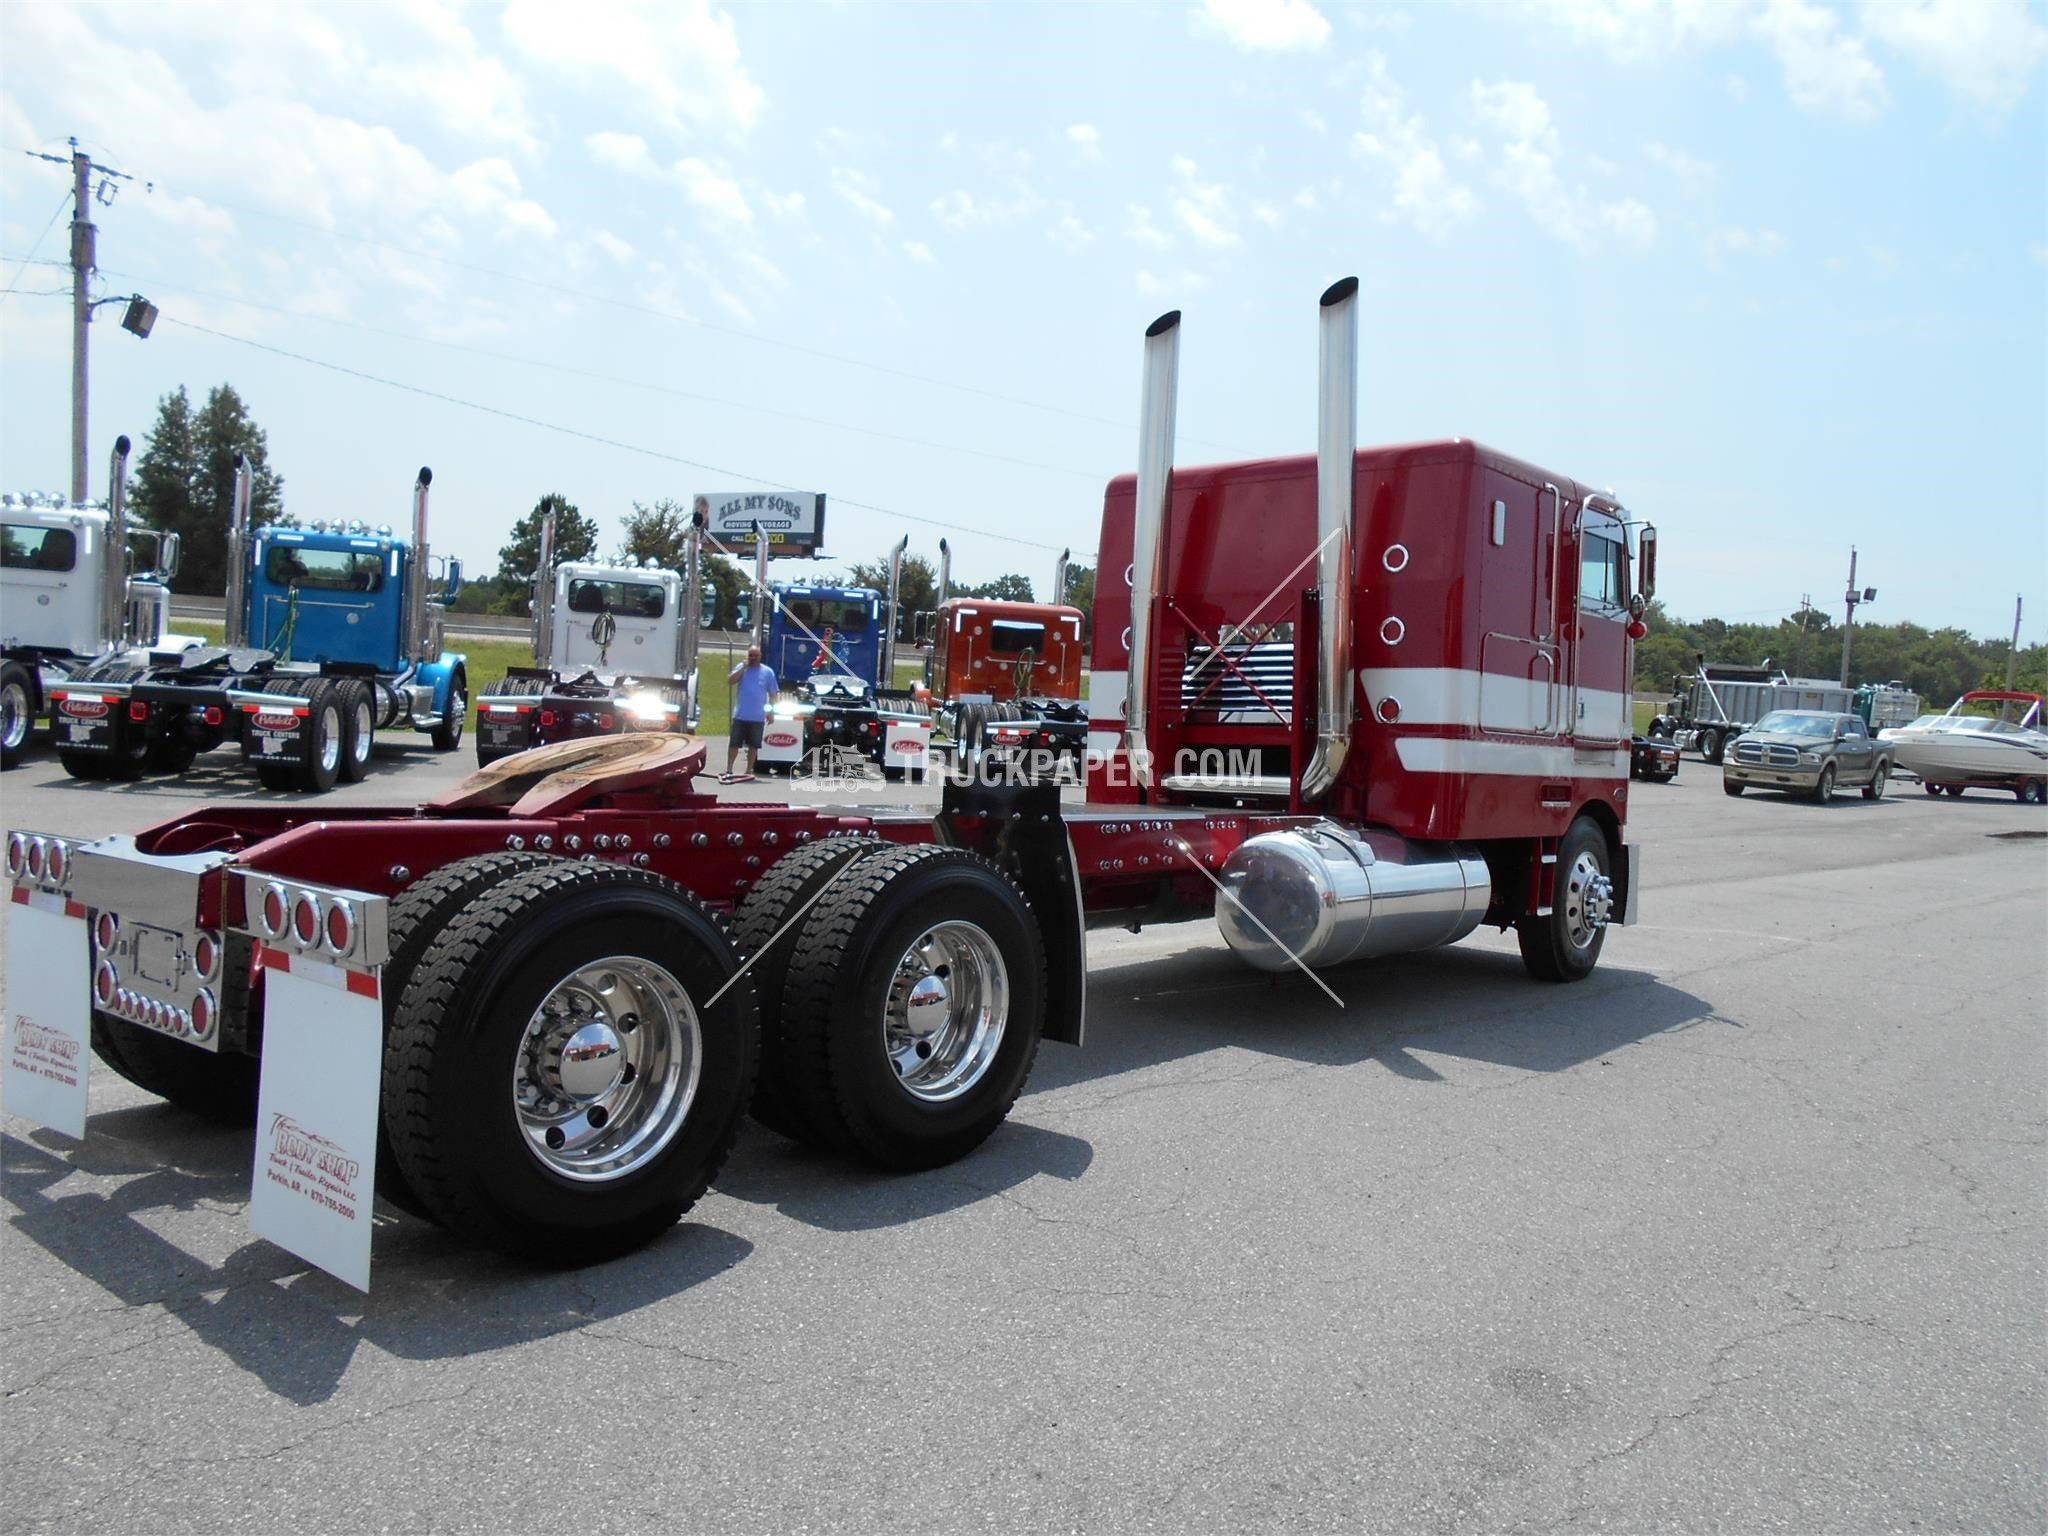 1987 peterbilt 362 for sale at truckpaper com hundreds of dealers thousands of